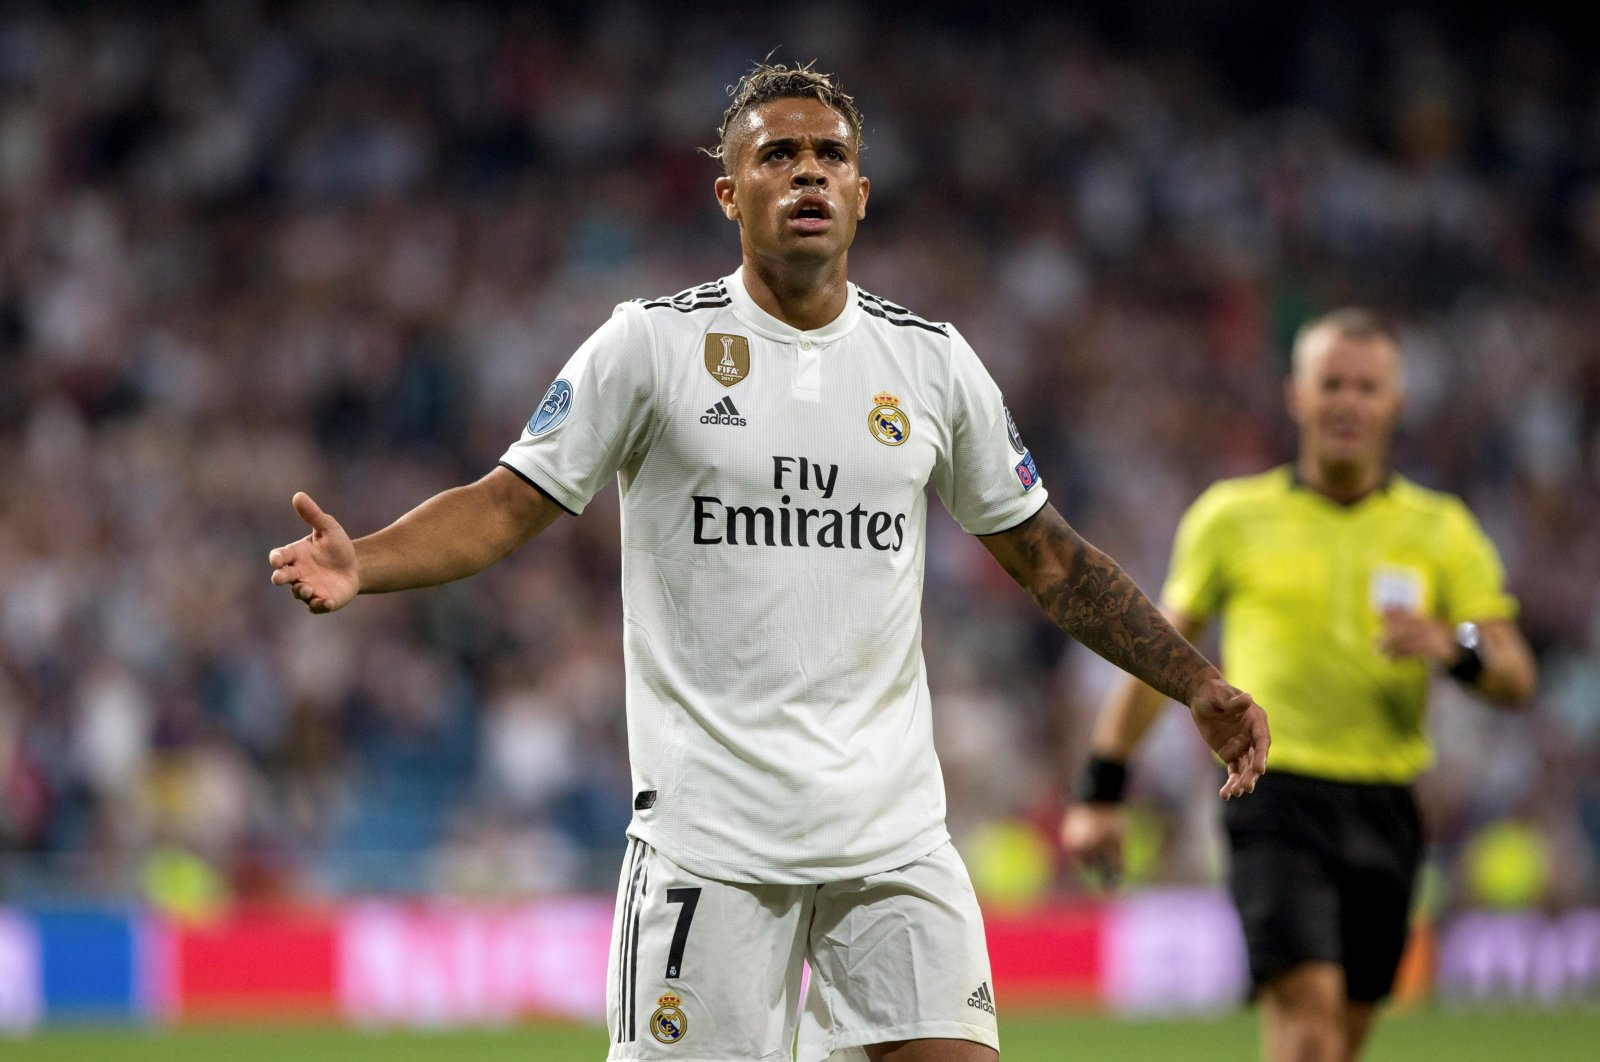 In this file photo, Real Madrid's Mariano Diaz celebrates a goal during the UEFA Champions League group stage match between Real Madrid and AS Roma at Santiago Bernabeu, in Madrid, Sept. 19, 2018. (EPA Photo)